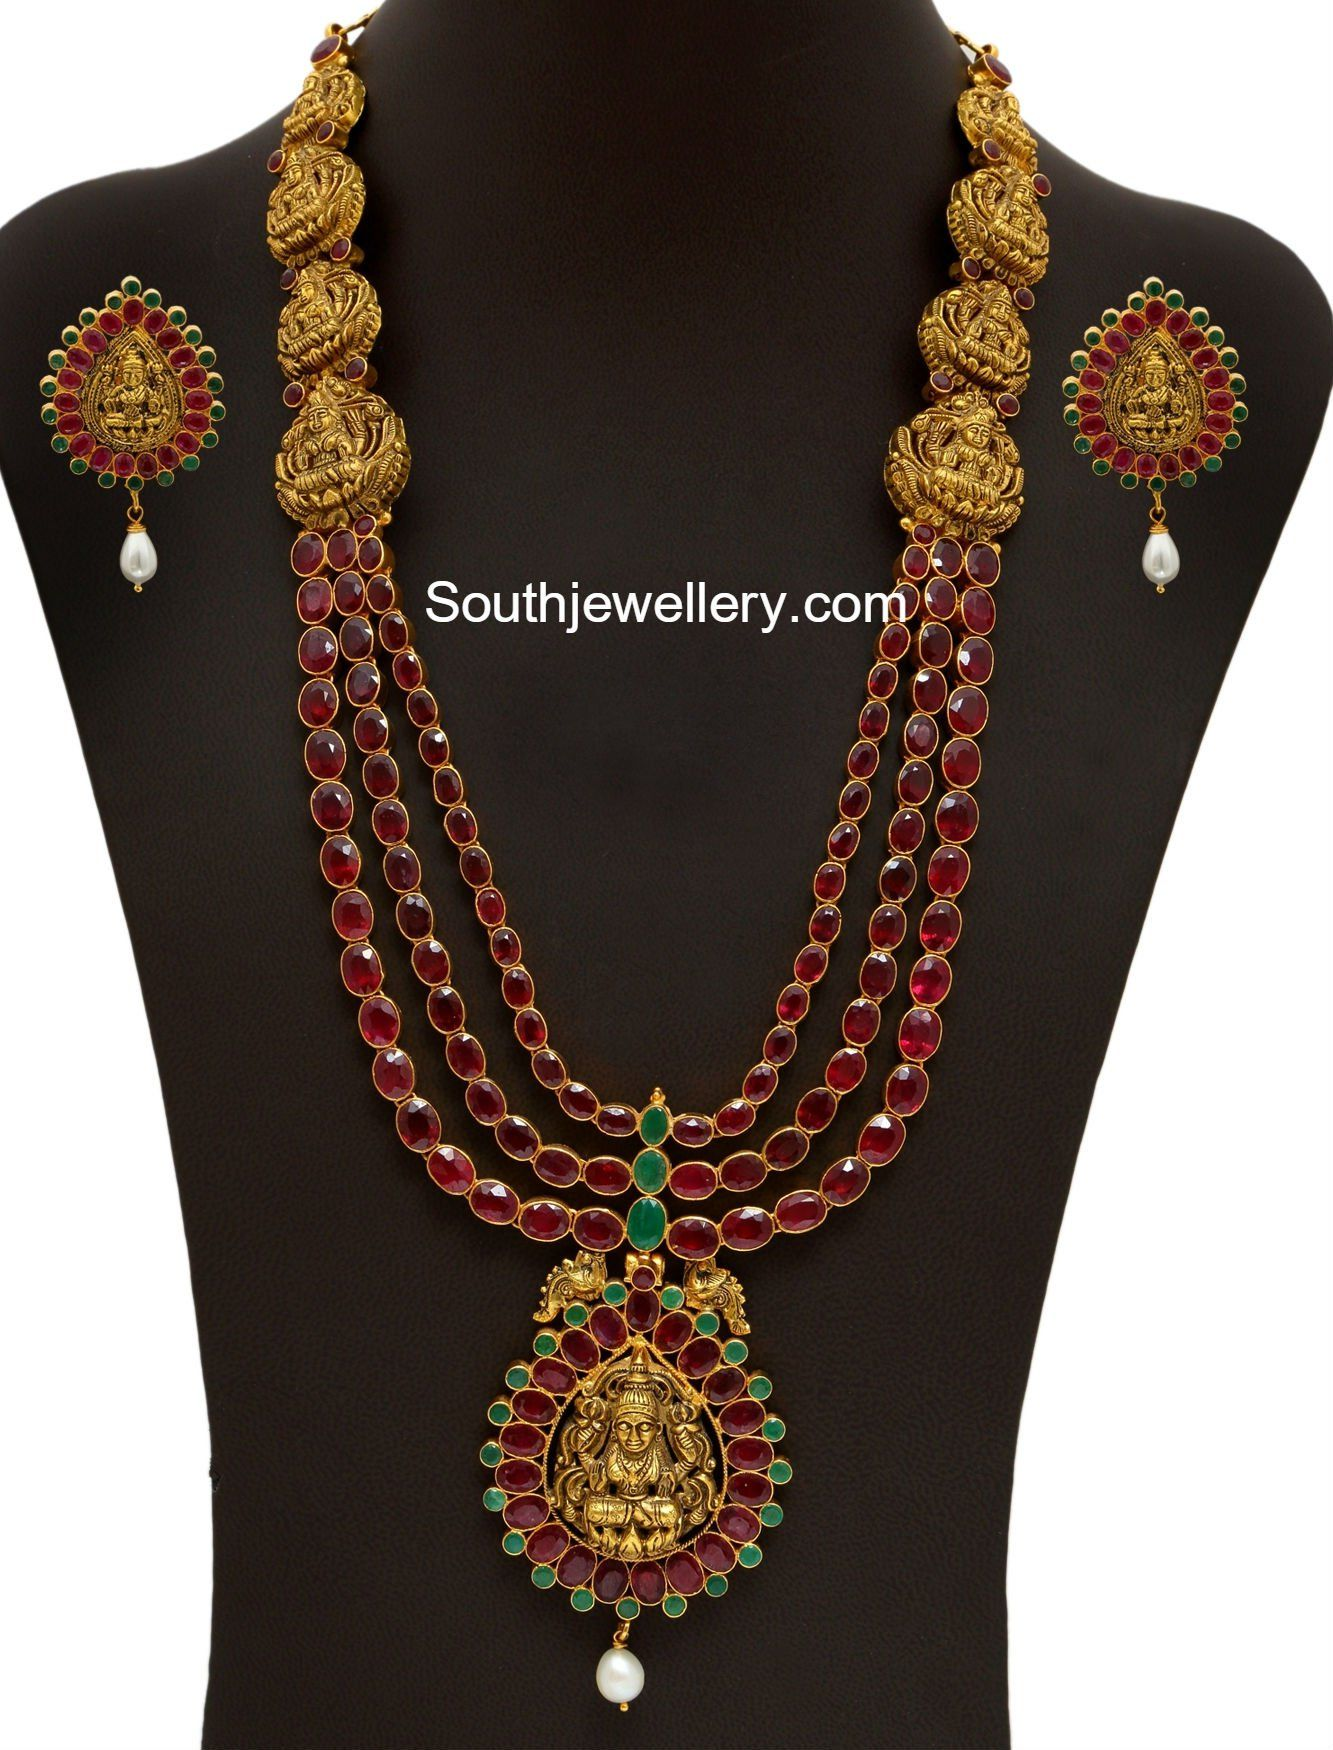 22 carat gold floral designer pendant with multiple beads chain and - Jewellery Designs Page 10 Of 948 Latest Indian Jewellery Designs 2017 22 Carat Gold Jewellery